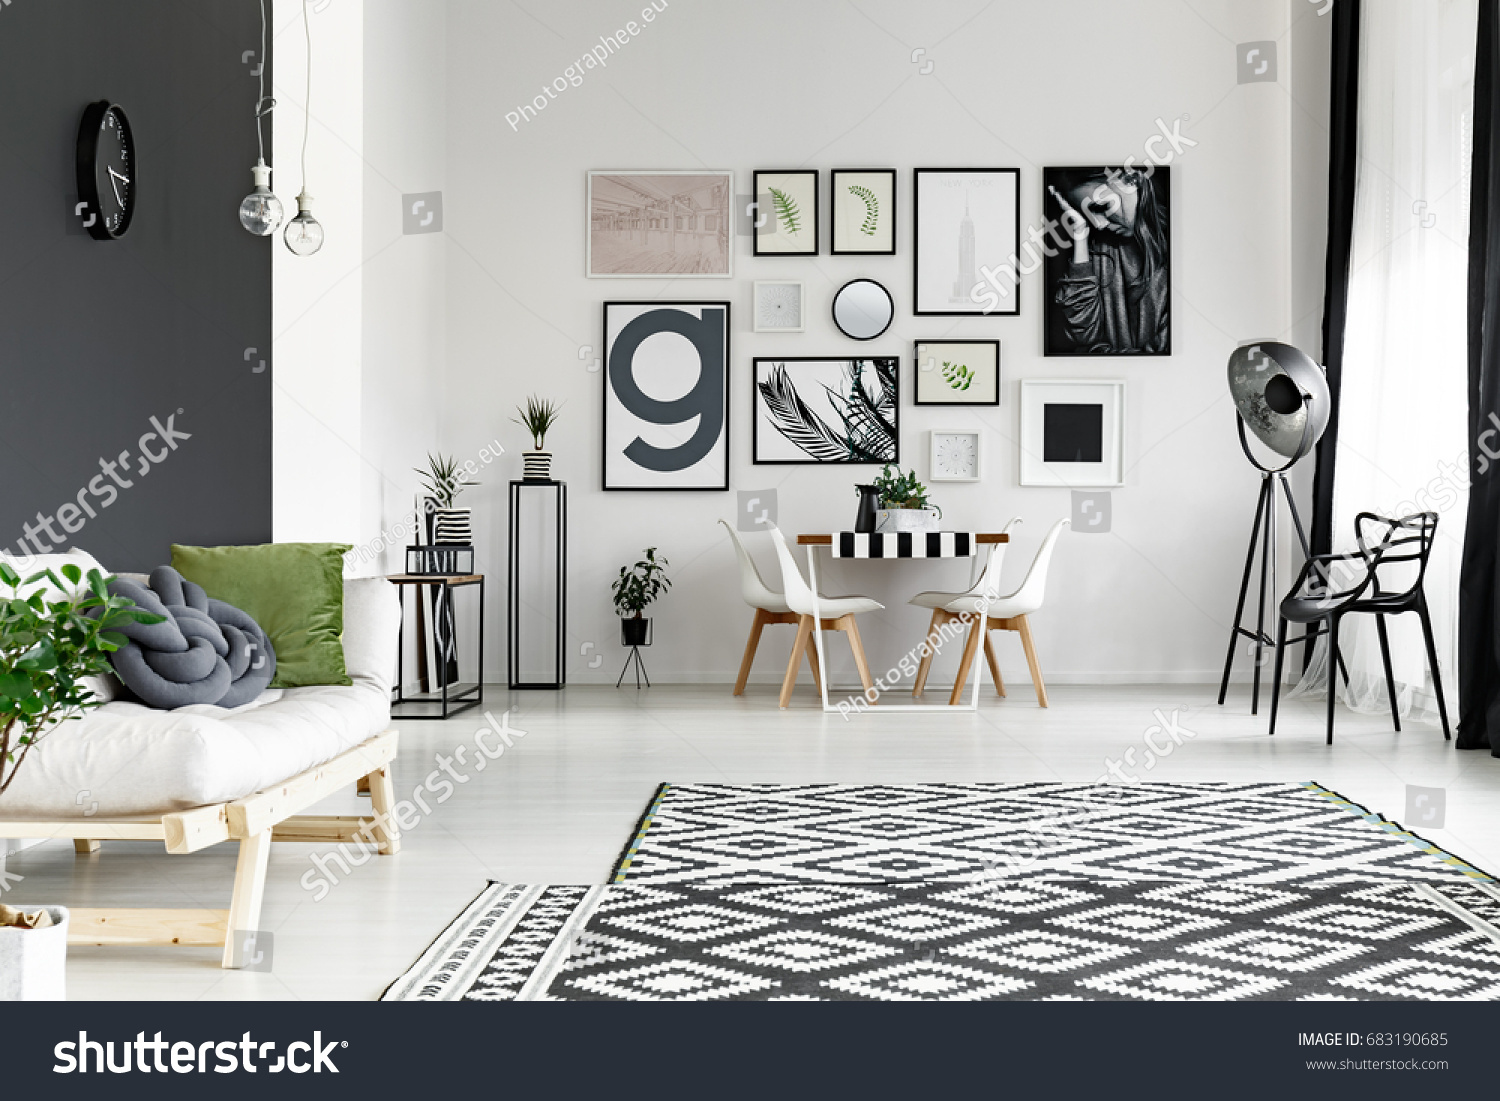 black and white walls in spacious living room with dining table